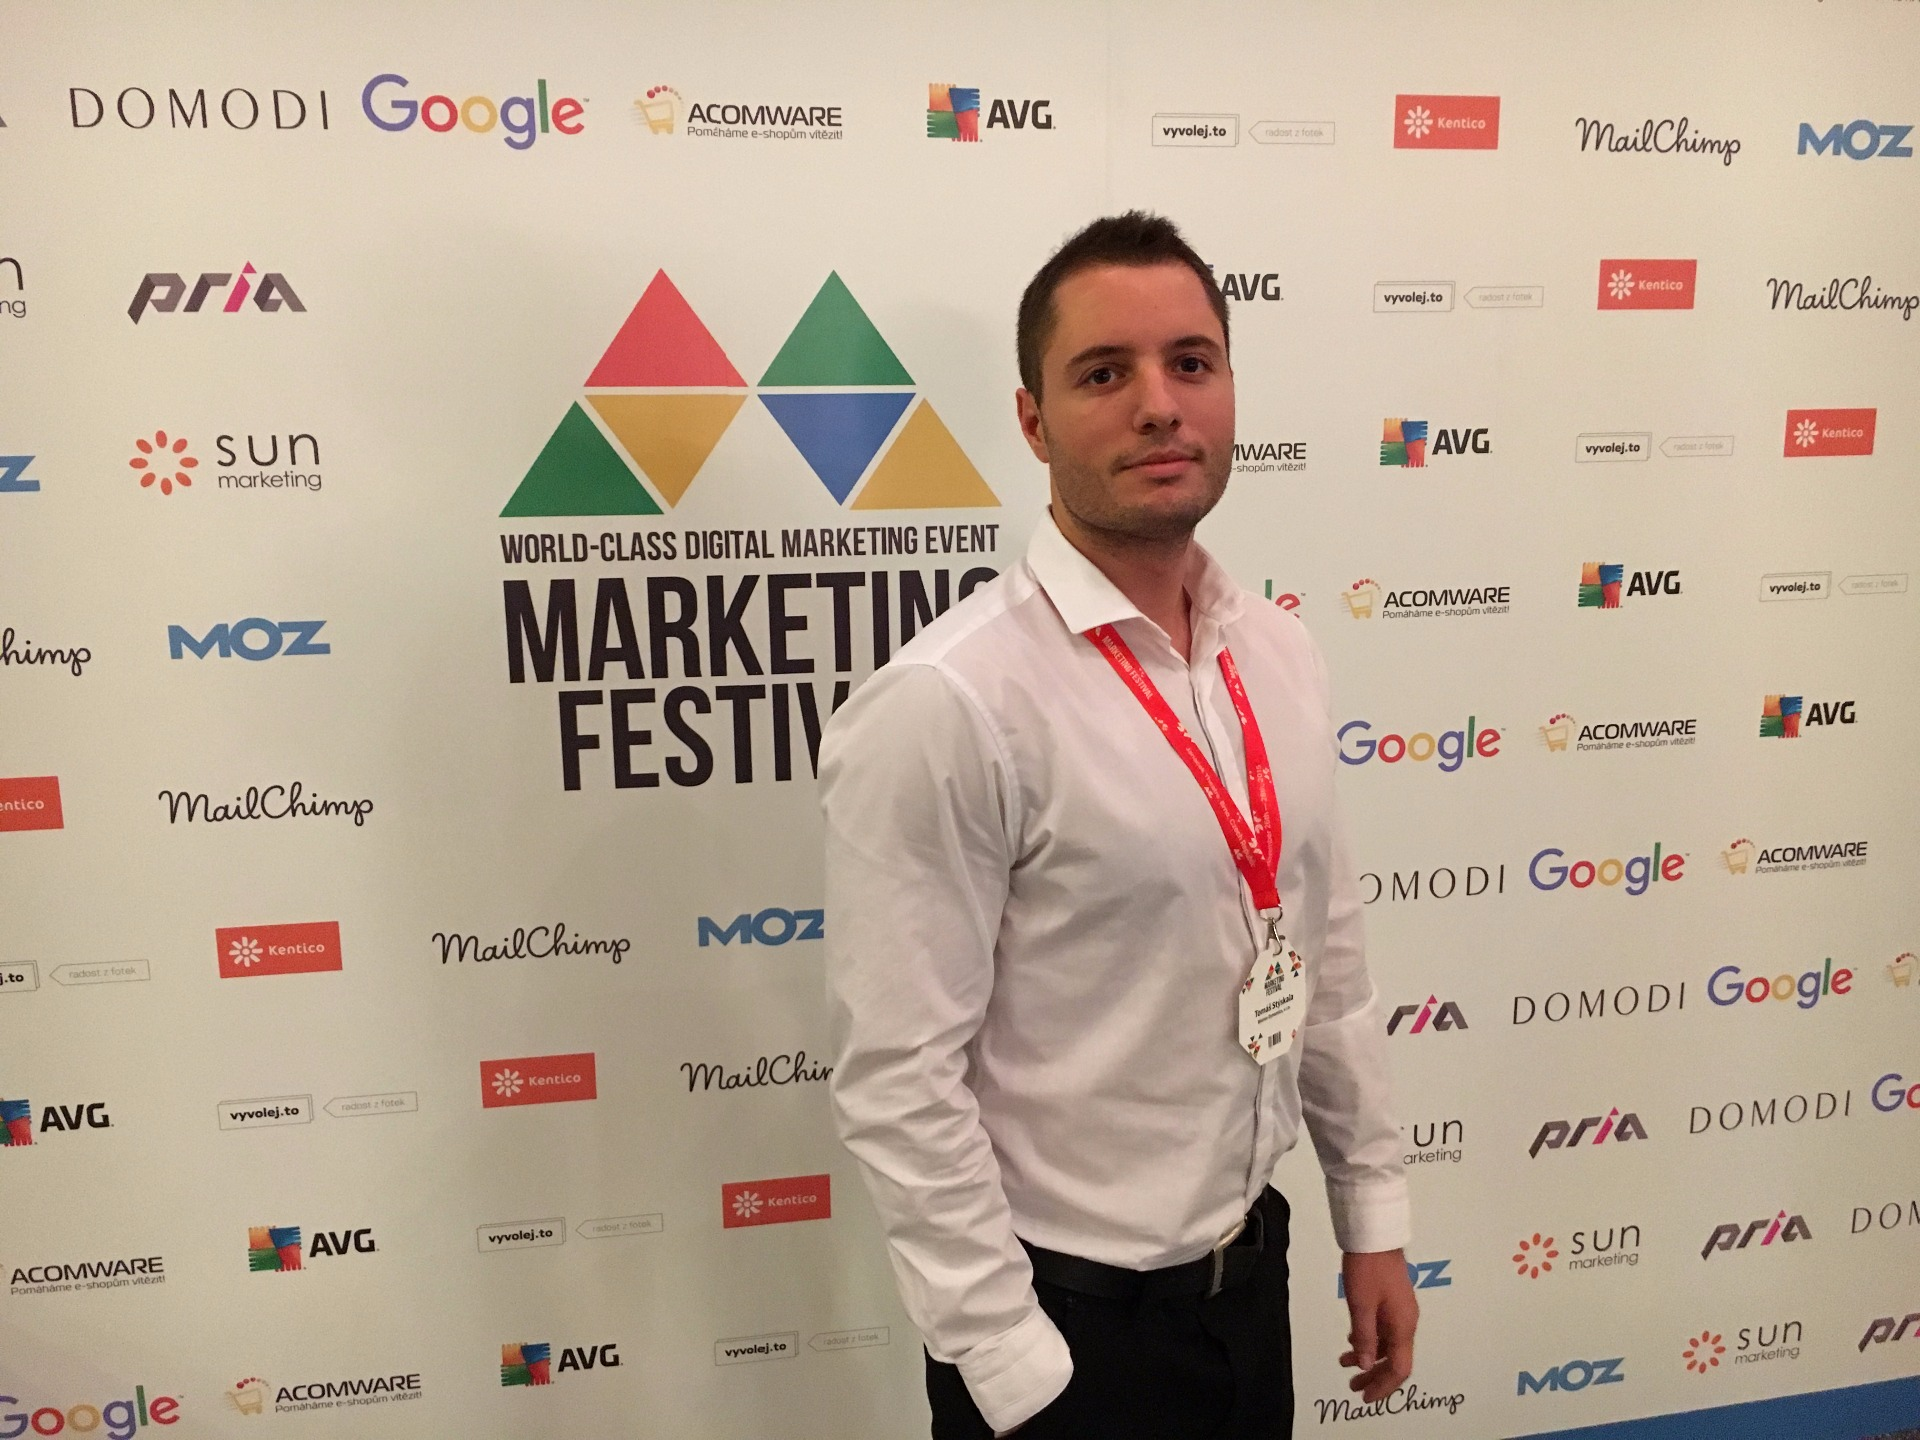 Marketingfestival 2015